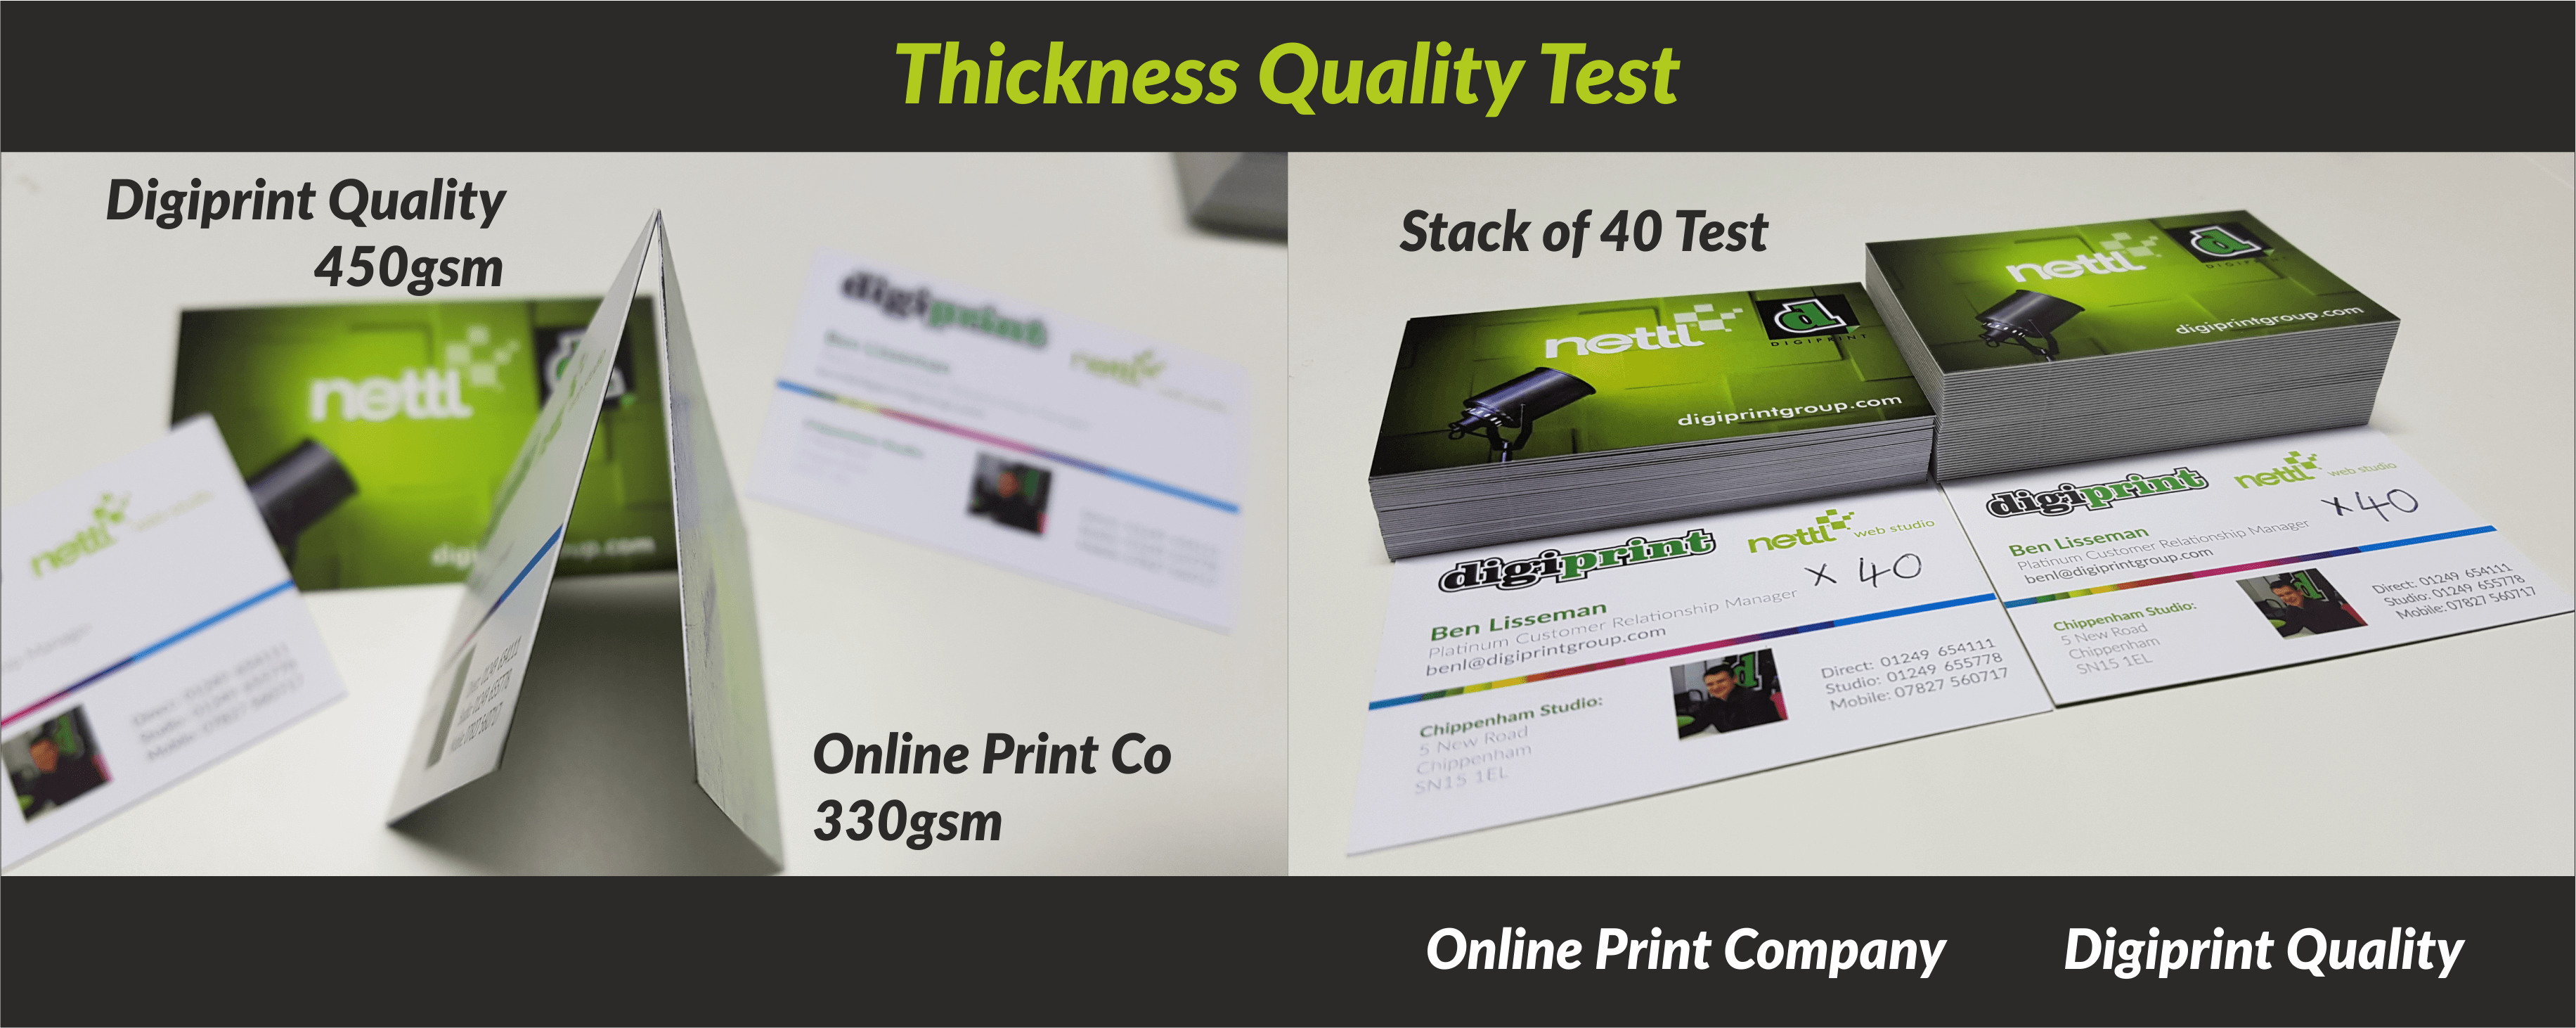 business cards thickness quality digiprint - Digiprint Group Bath ...